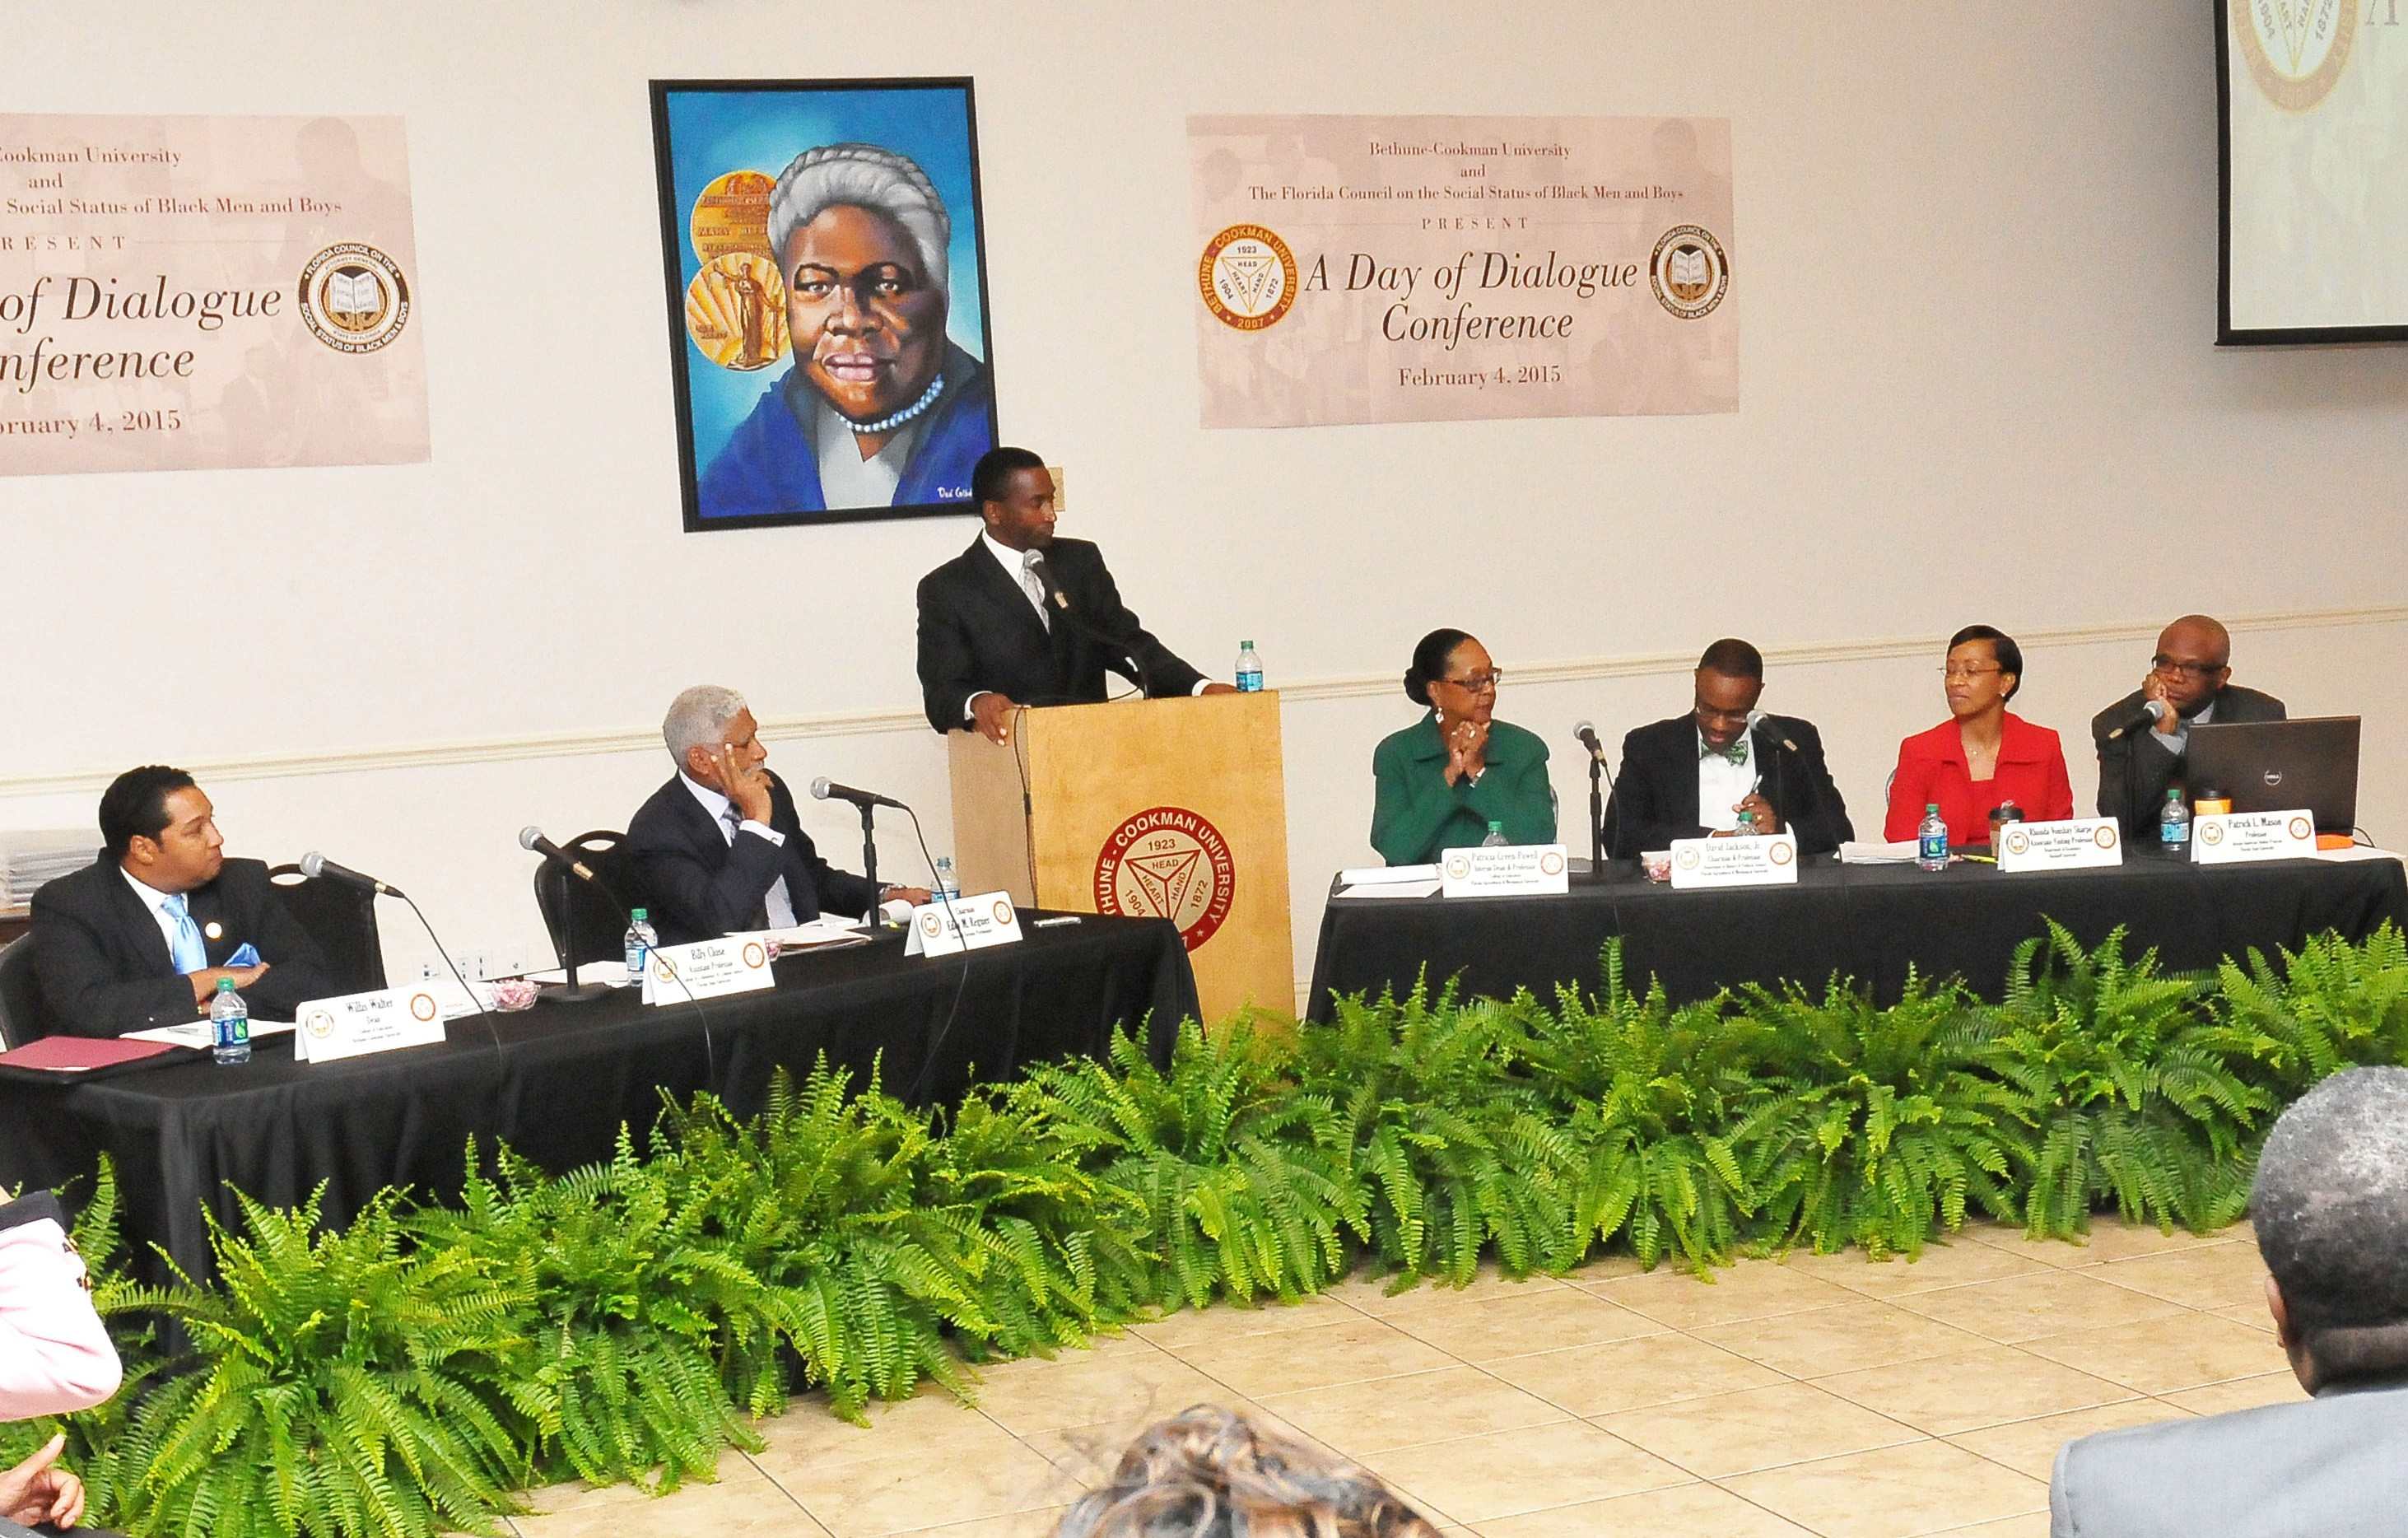 Day of Dialogue Panel: FAMU - David Jackson, Jr. & Patricia Green-Powell, FSU - Patrick Mason, Bucknell University - Rhonda Sharpe and The College Board - Amy Wilkins